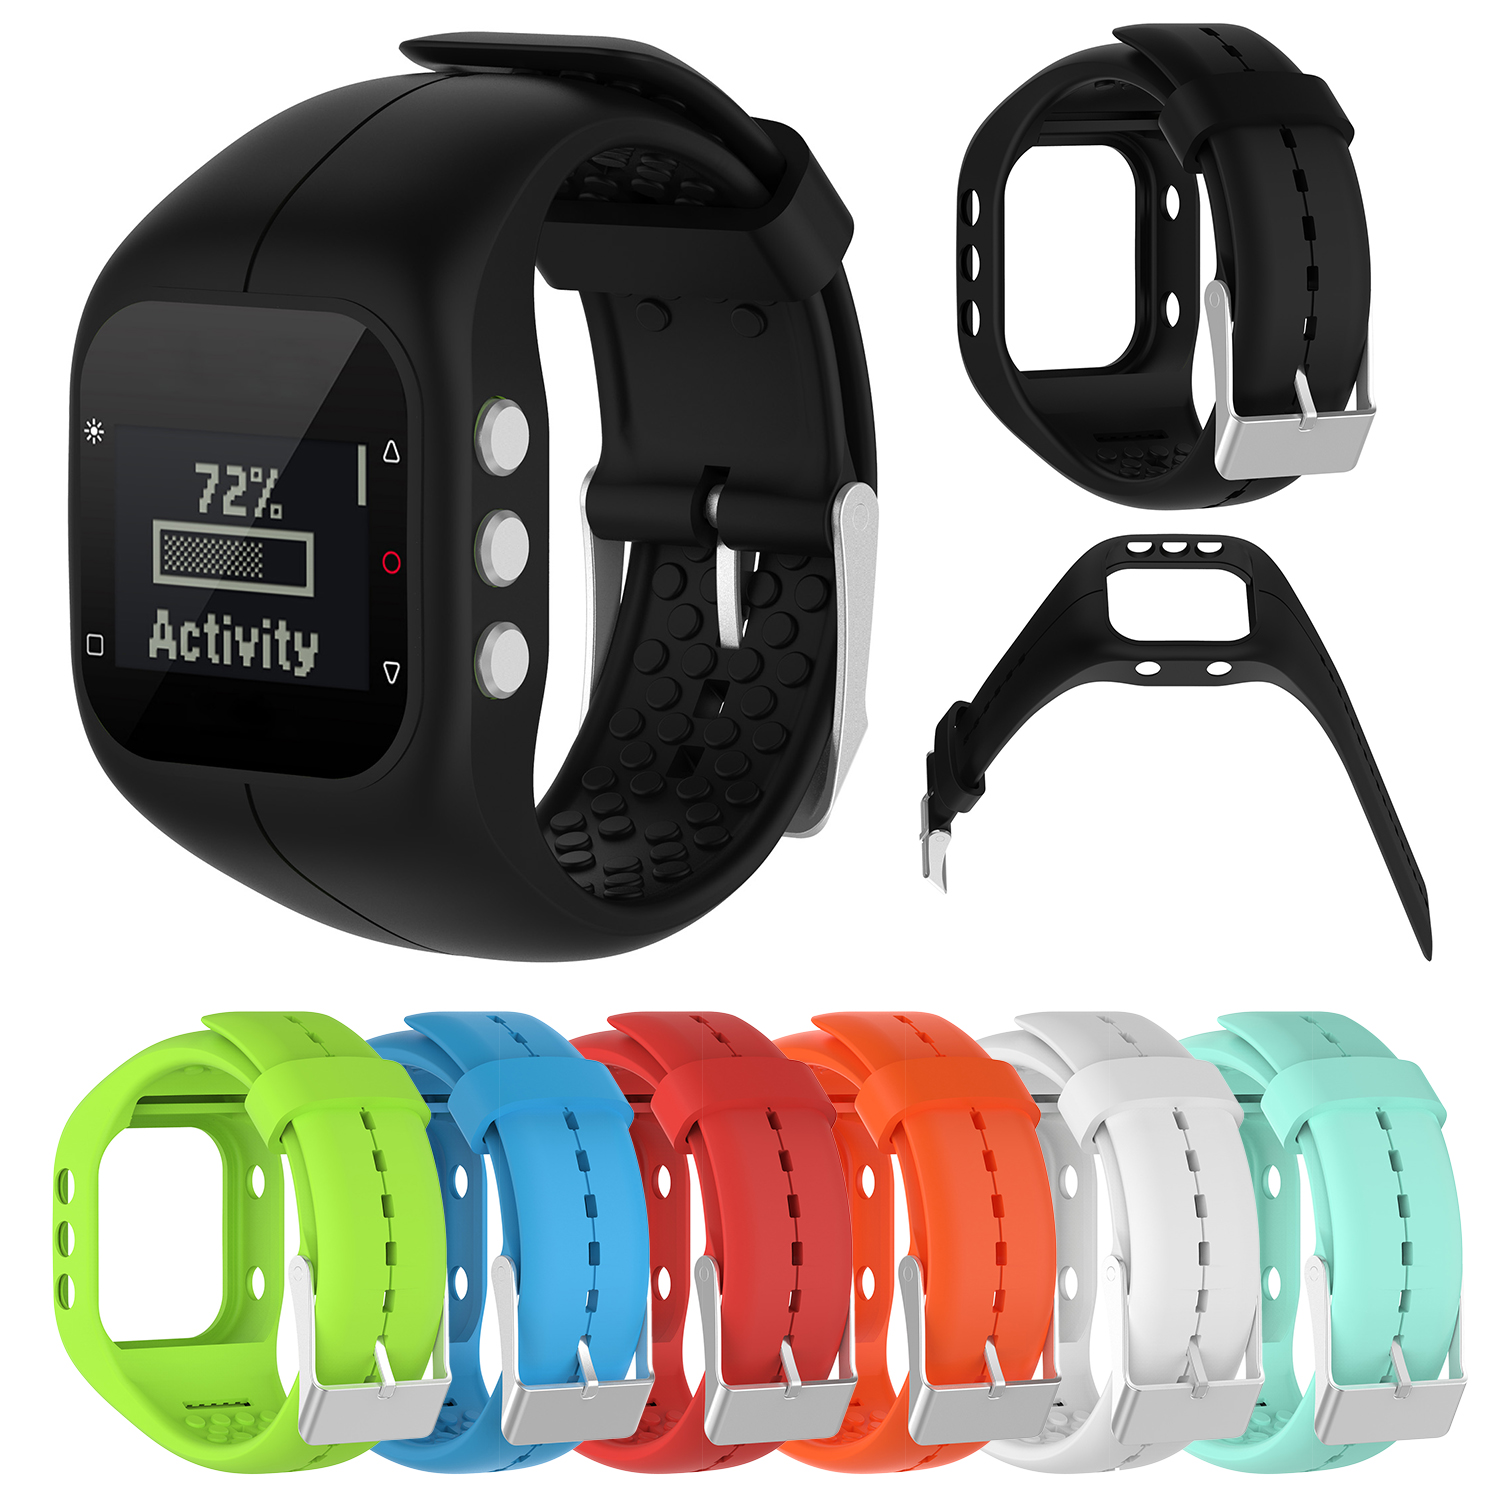 Silicone Fitness Replacement Band Wrist Strap For Polar A300 Smart Watch Accessories Fitness Watch Sport Watch Band